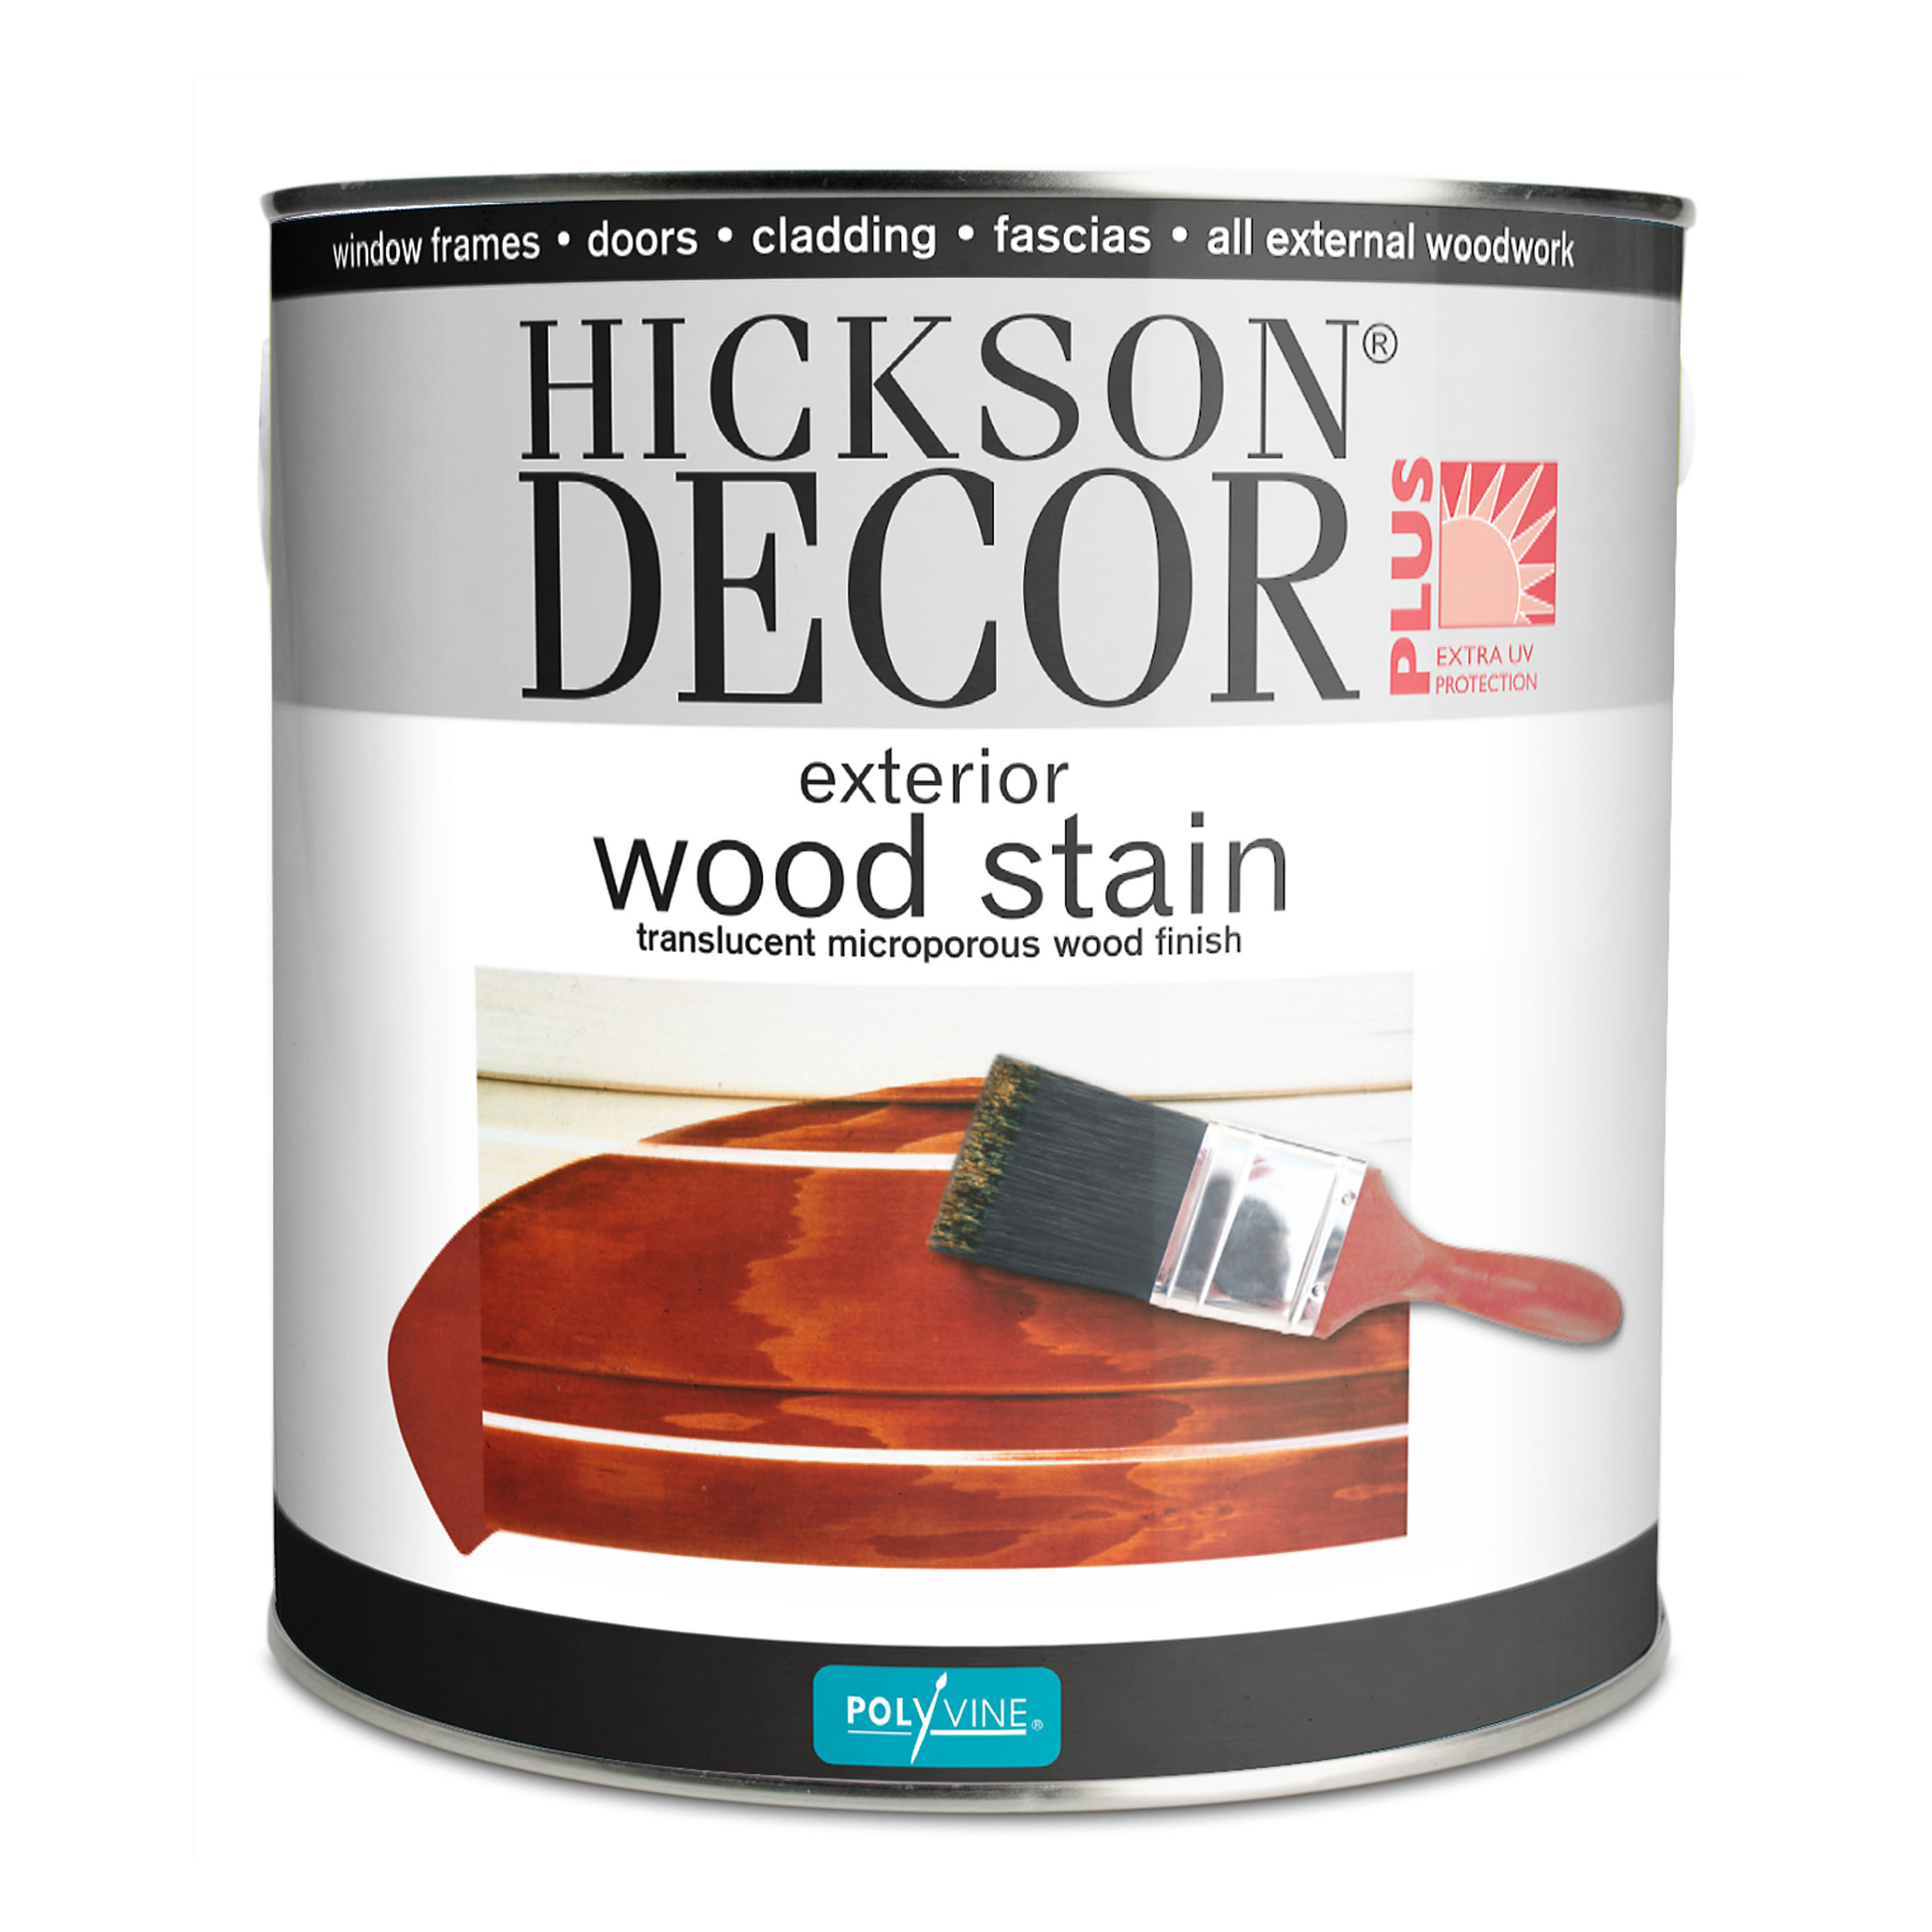 Hickson Decor Wood Stain 2 5 Litre